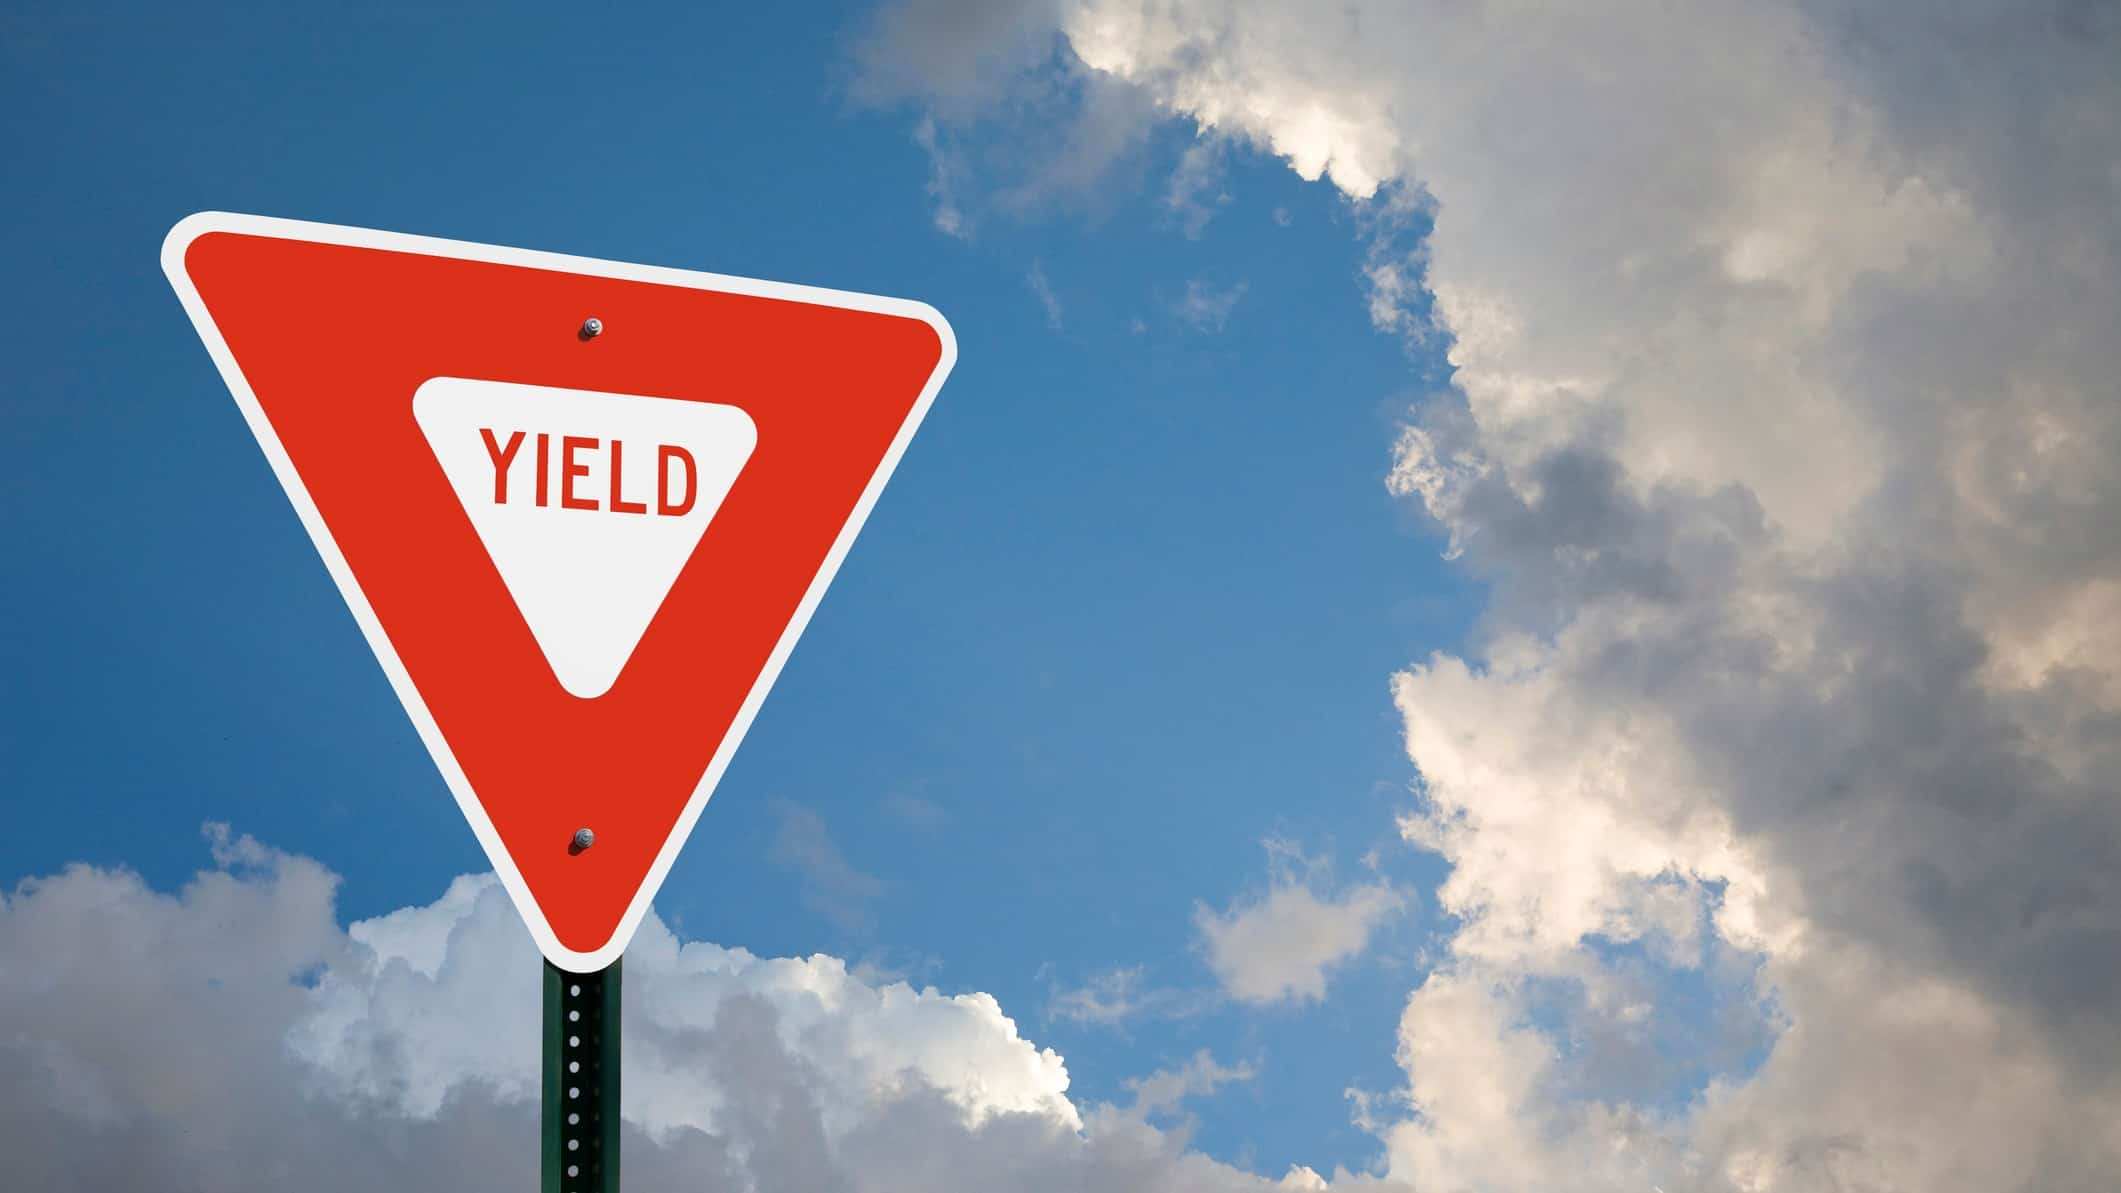 asx share price dividend yield represented by street sign saying the word yield.